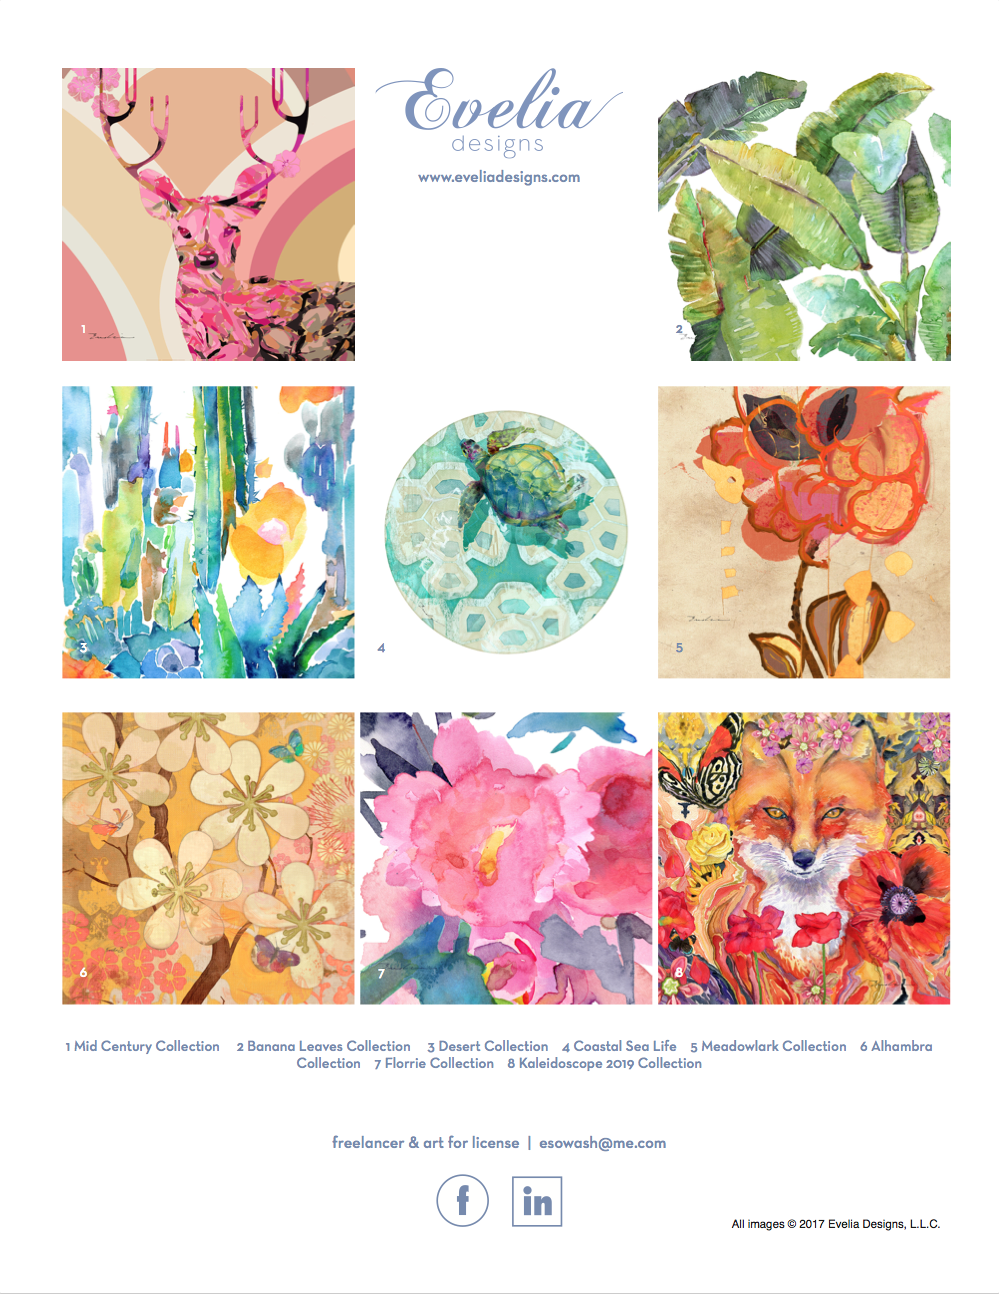 Evelia designs' artwork can be formatted to any product. - download pdf one sheet